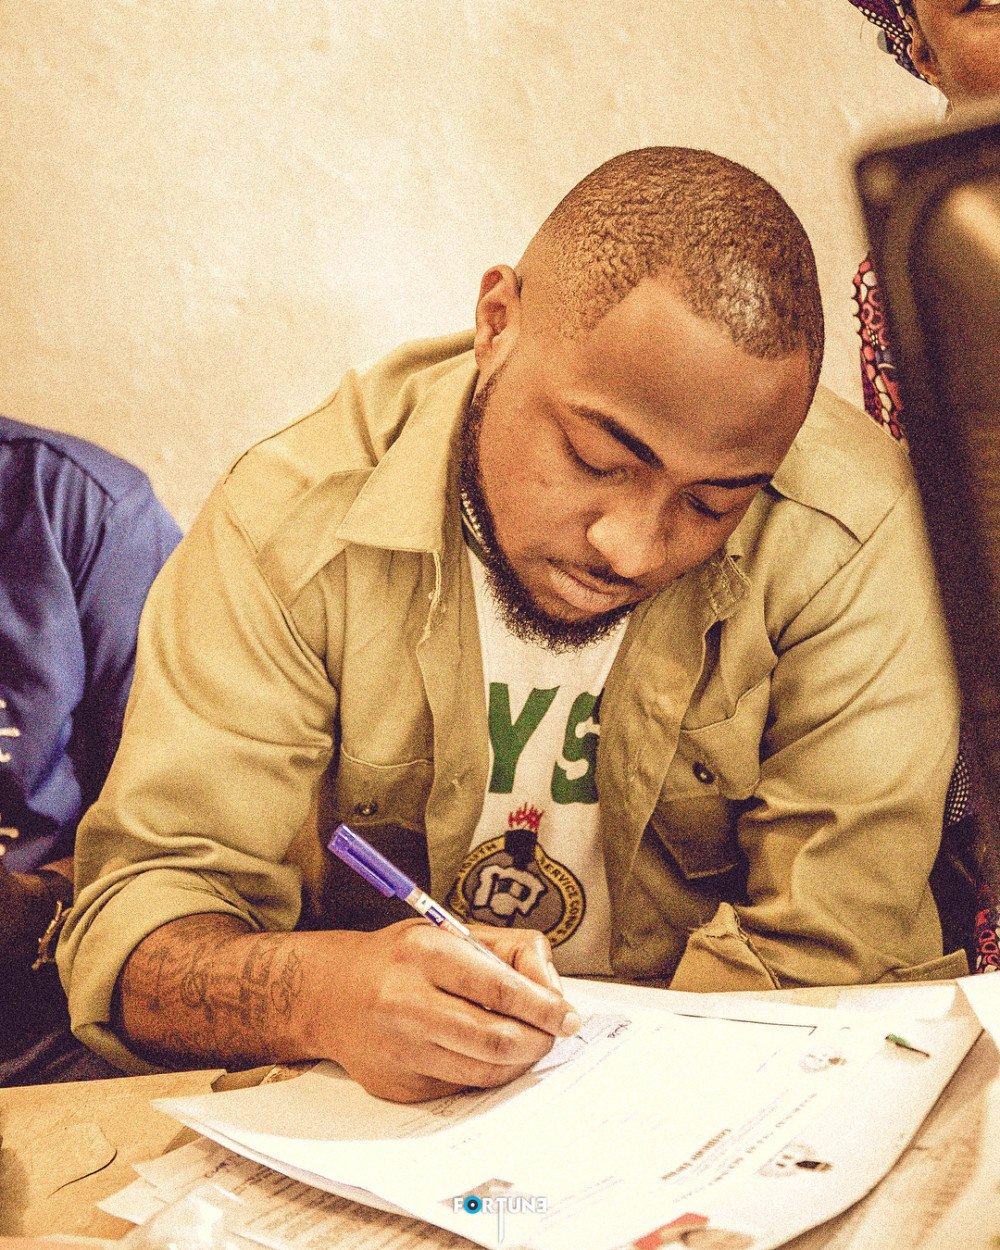 Davido is reportedly dismissed from the NYSC programme for taking part in politics.